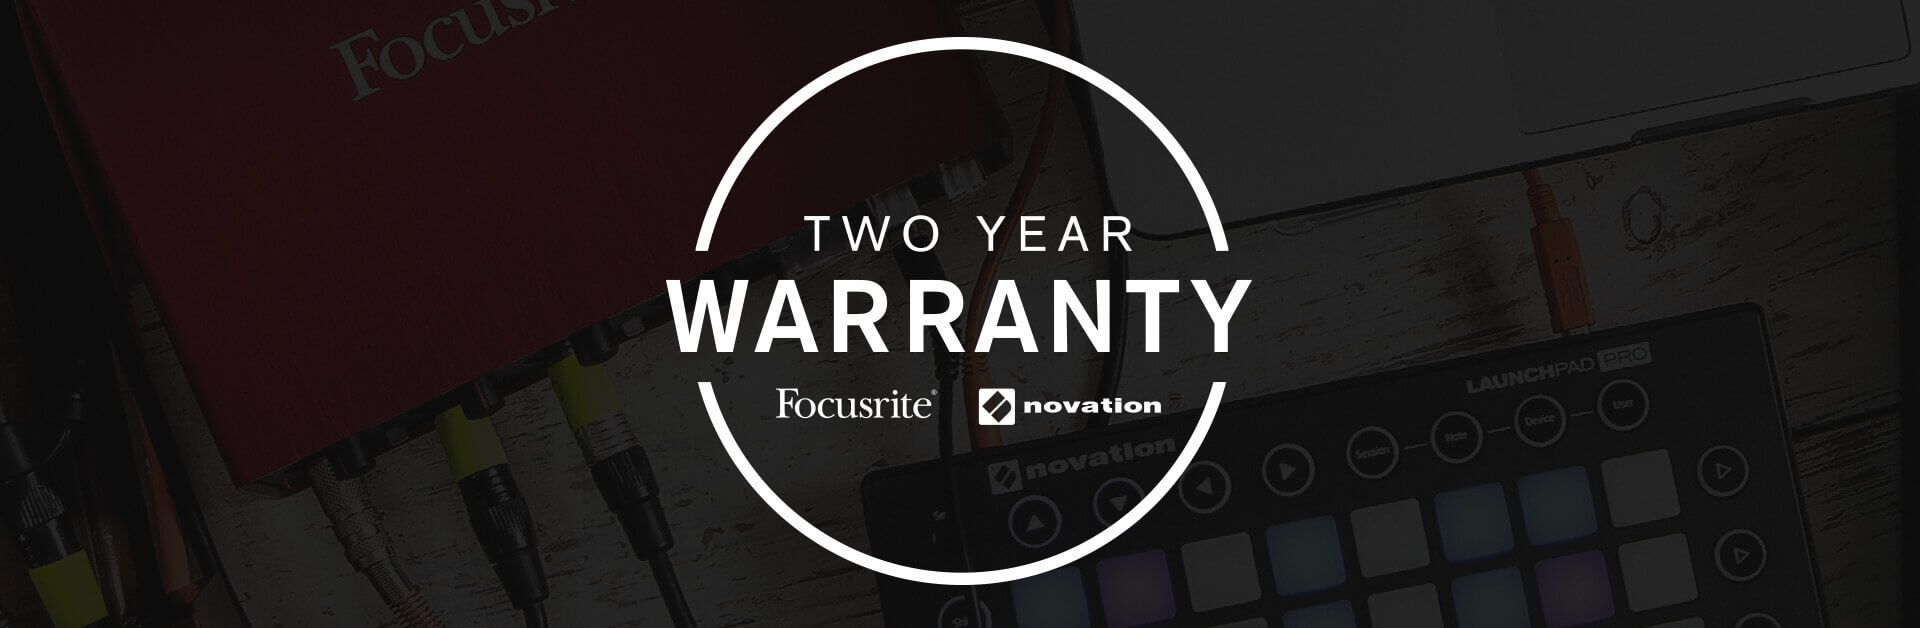 Focusrite_Warranty_hr